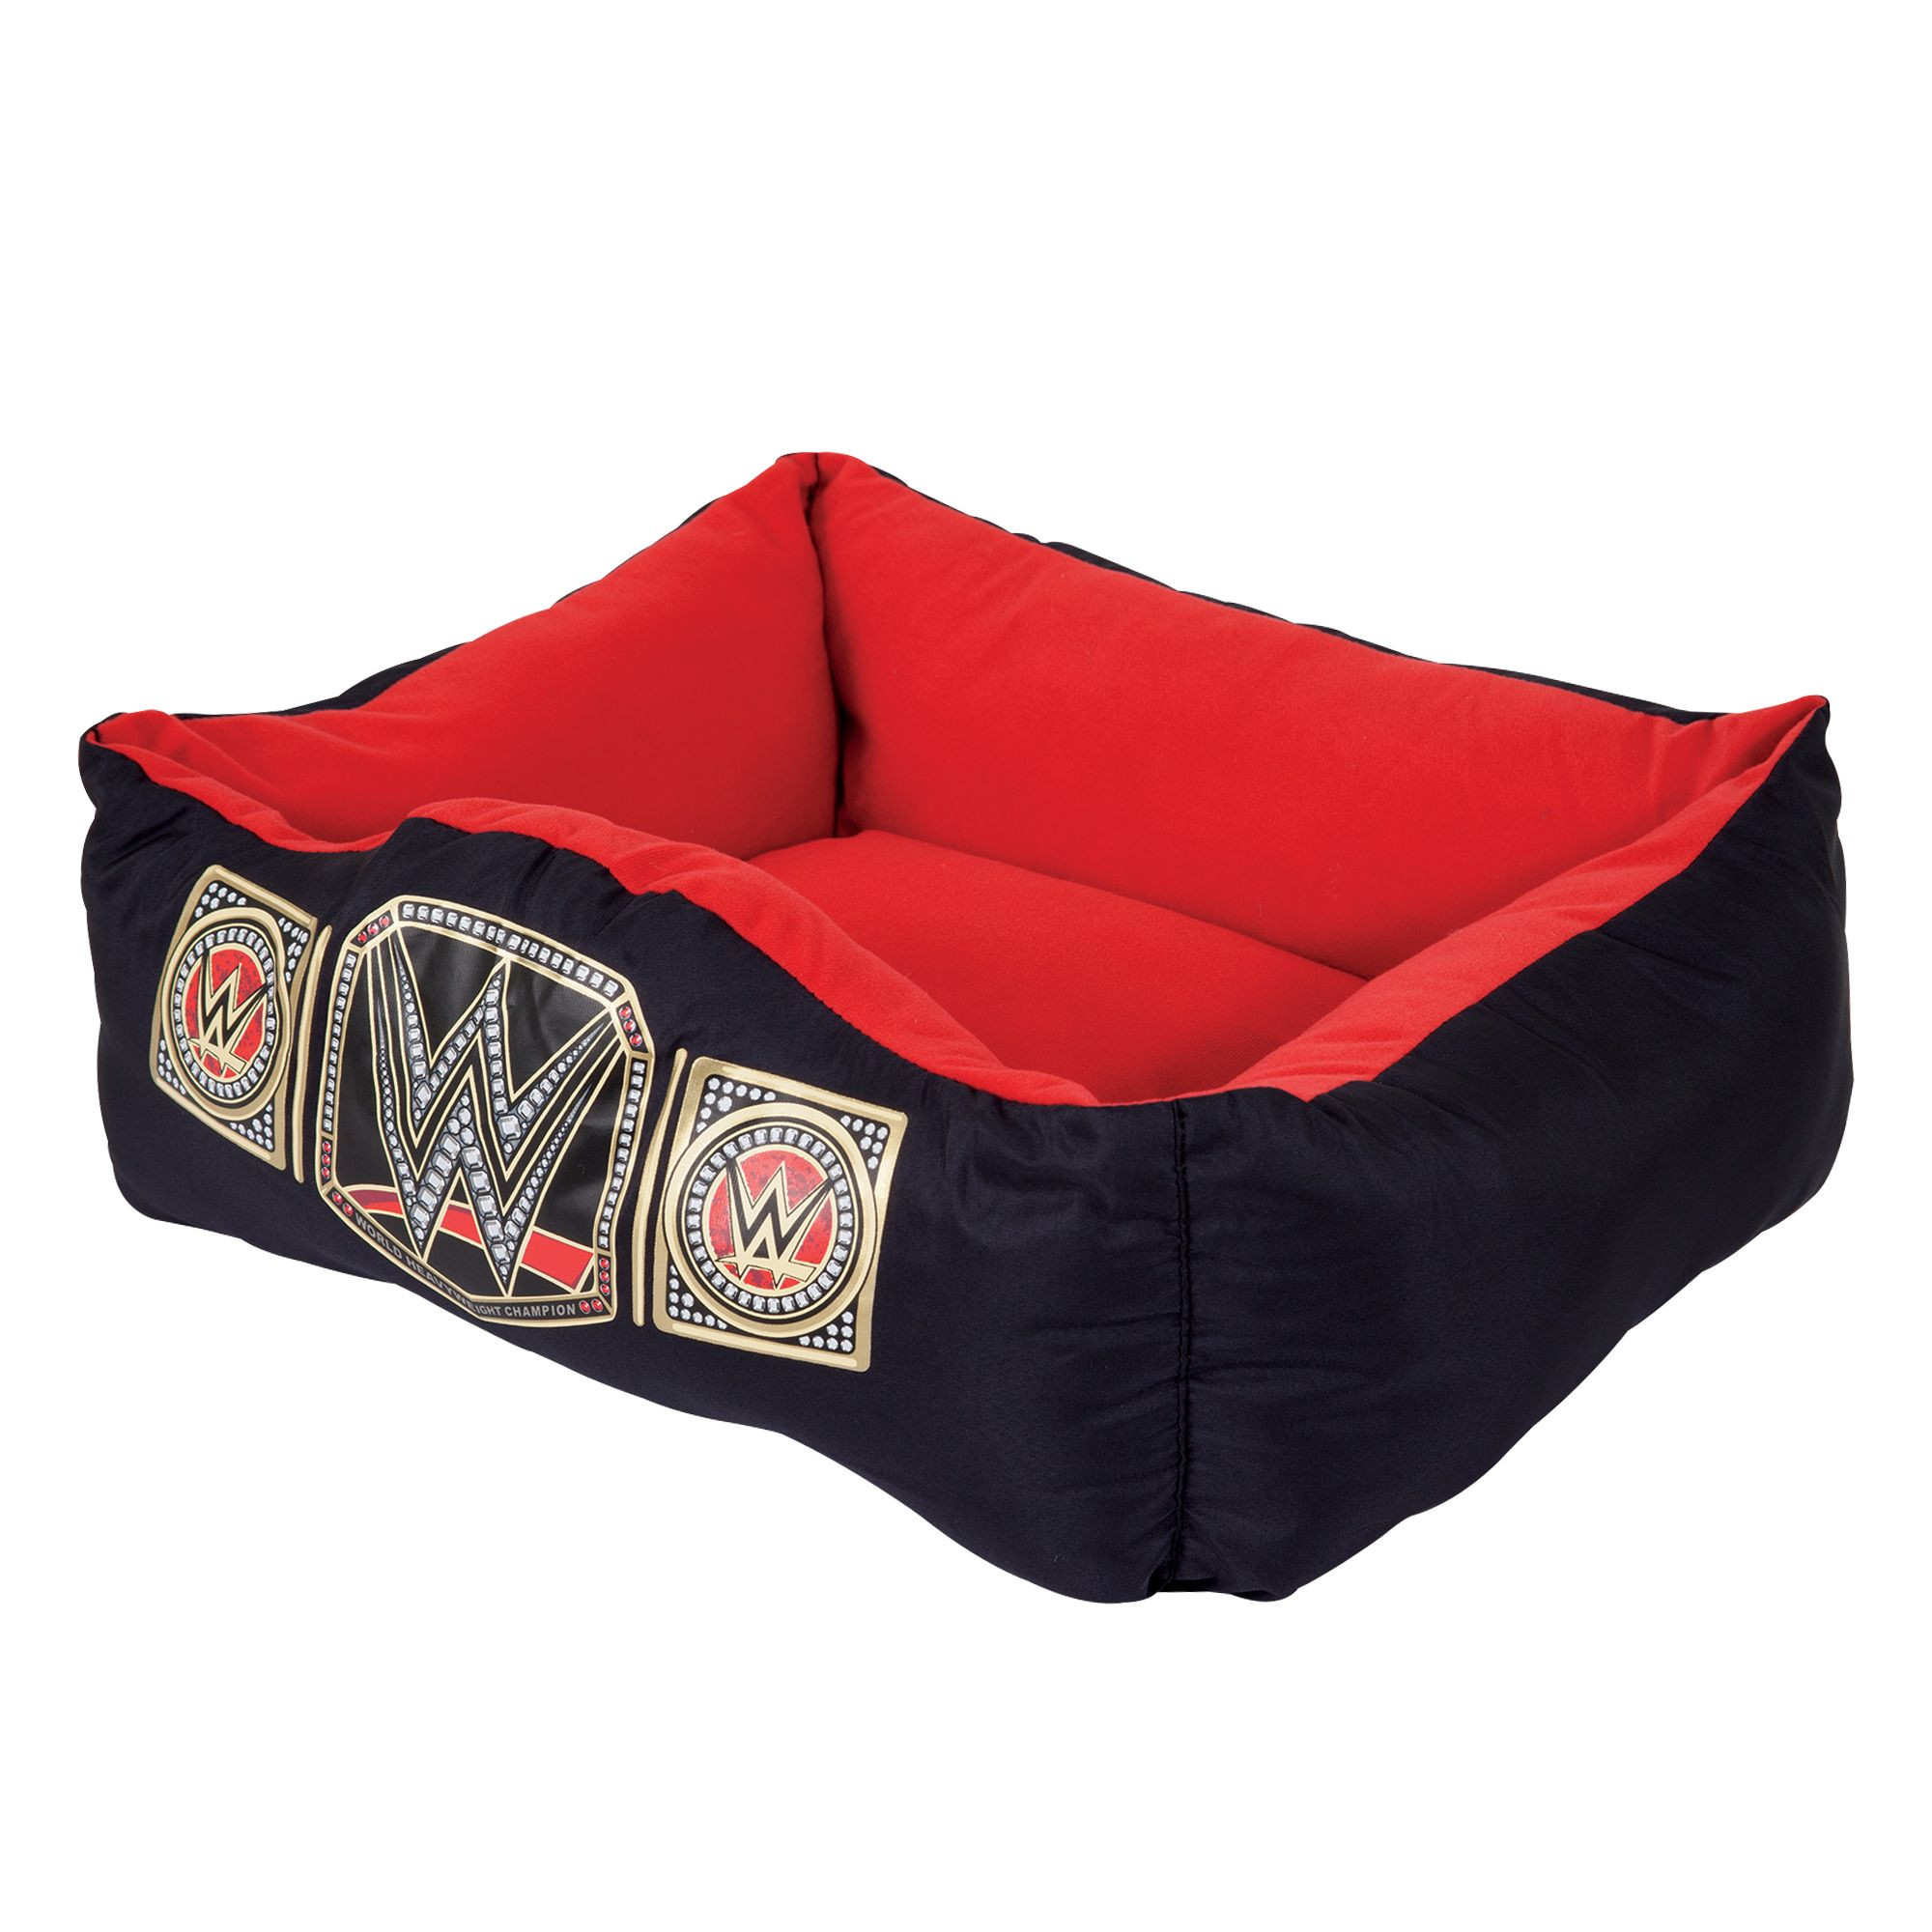 Wwe Championship Lounger Dog Bed